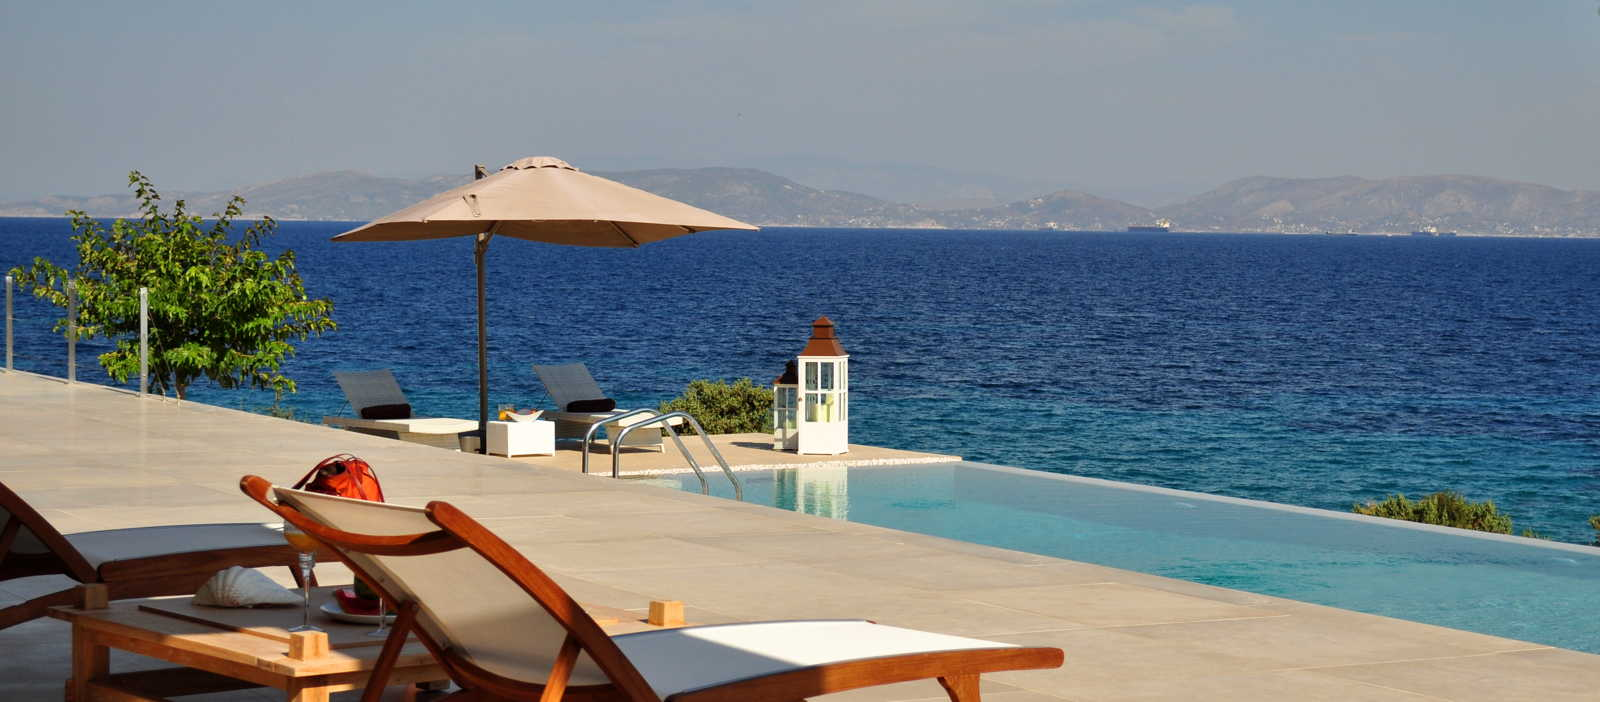 Luxurious holiday homes on Aegina island